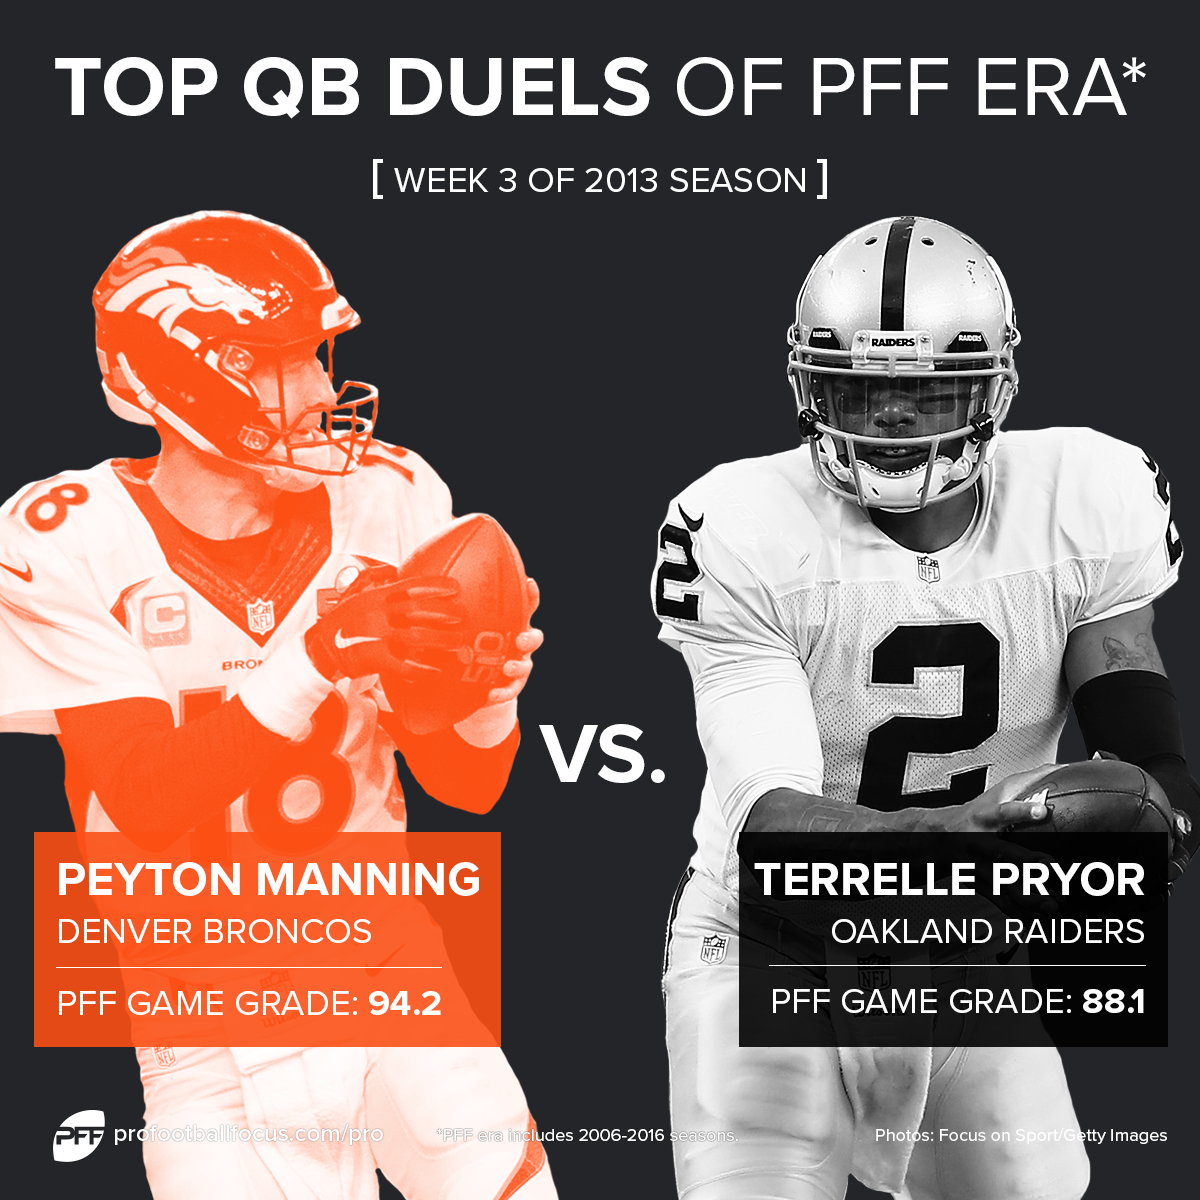 Peyton Manning vs. Terrelle Pryor